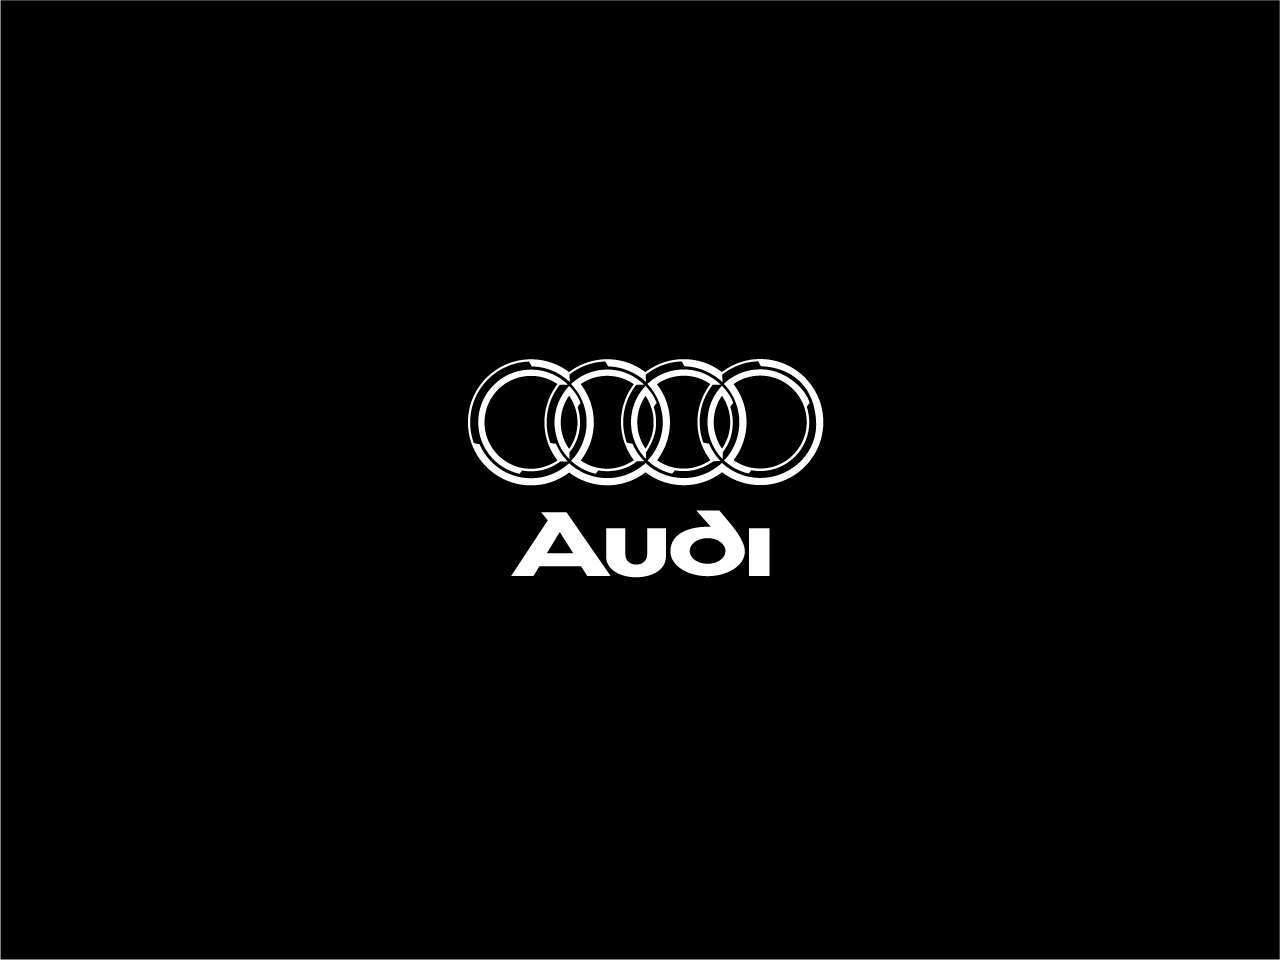 Audi Logo Black Wallpaper Amazing Wallpaper Hd Library